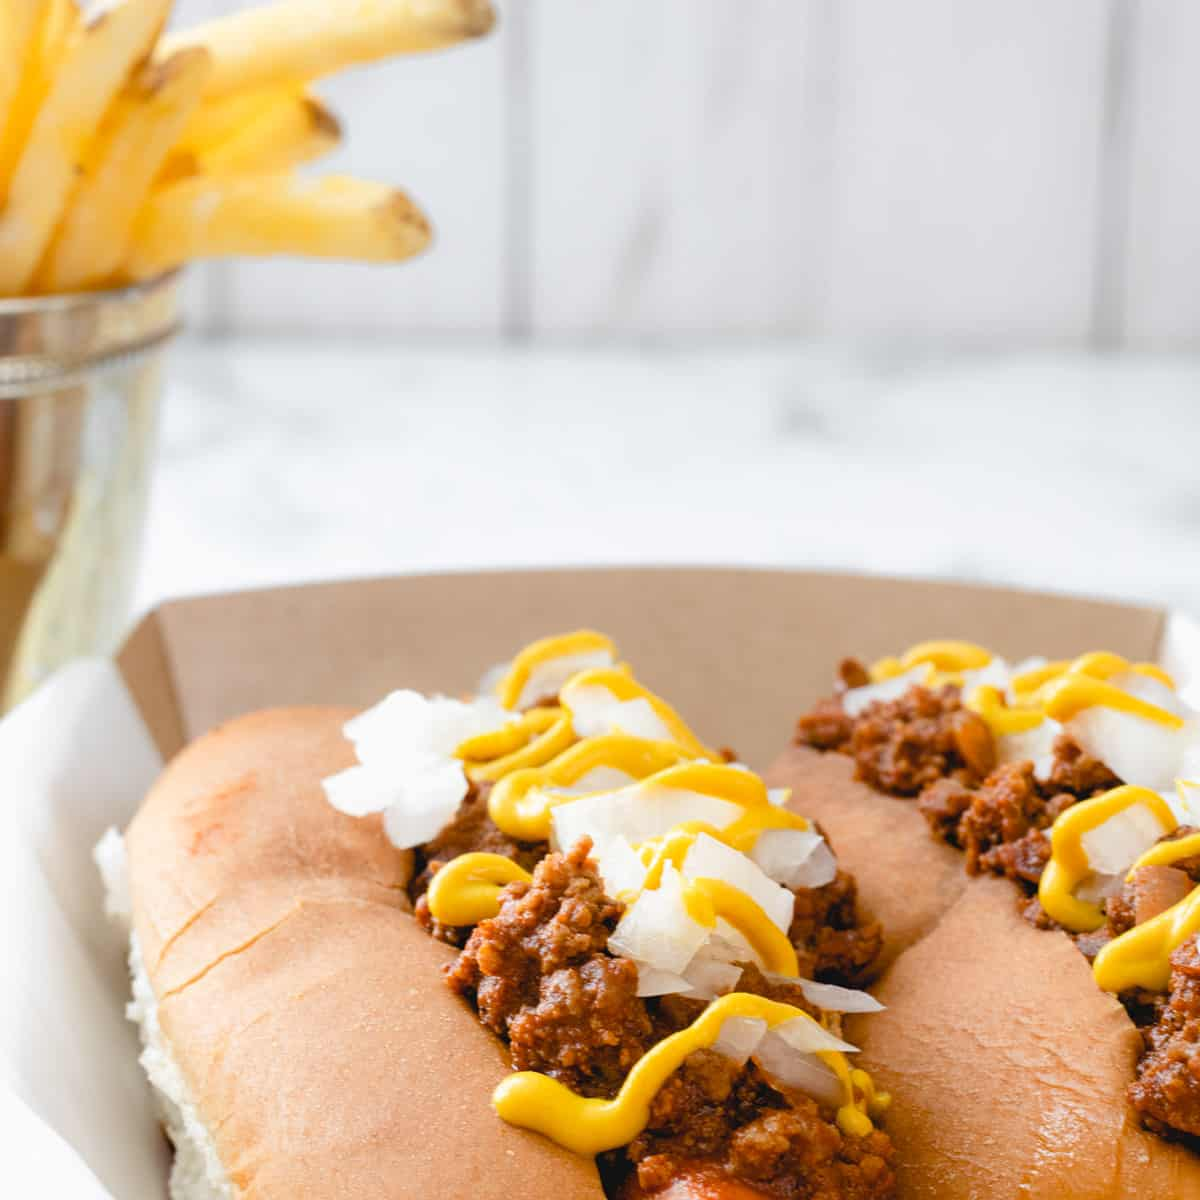 Two coney dogs, a famous food from Michigan, along with French fries.